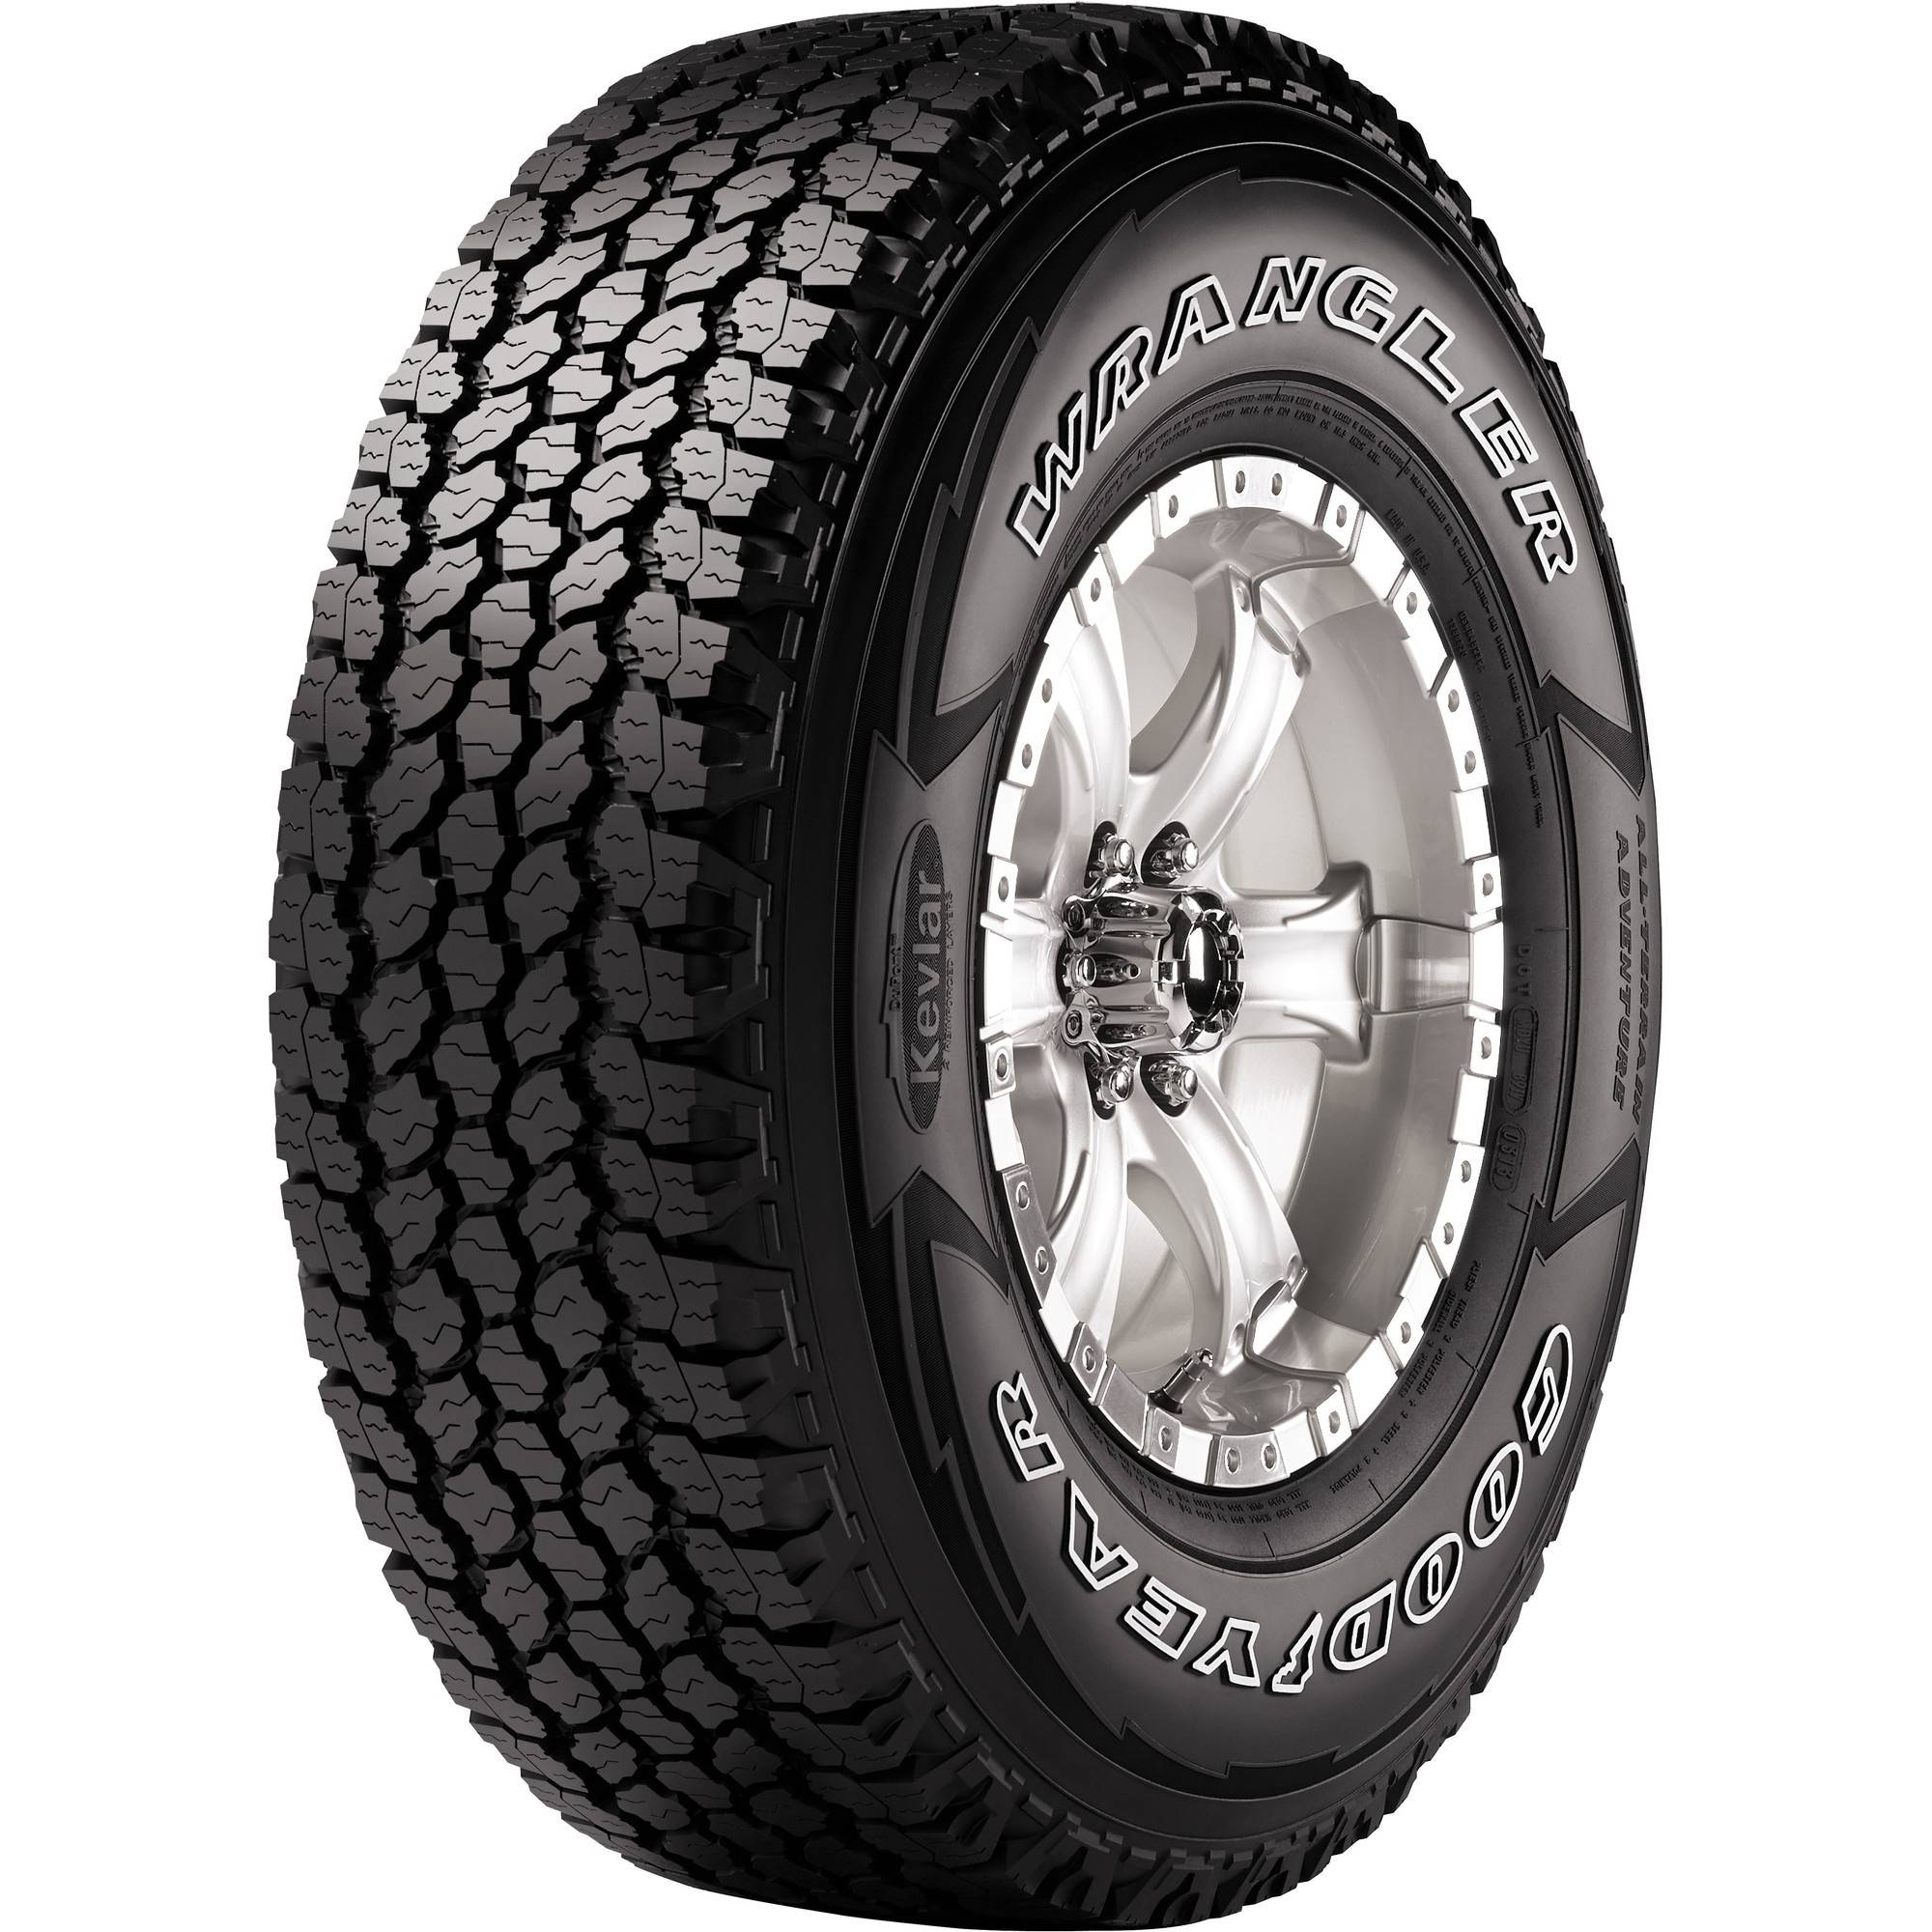 Goodyear Wrangler All-Terrain Adventure 265/65R18/SL Tire 114T